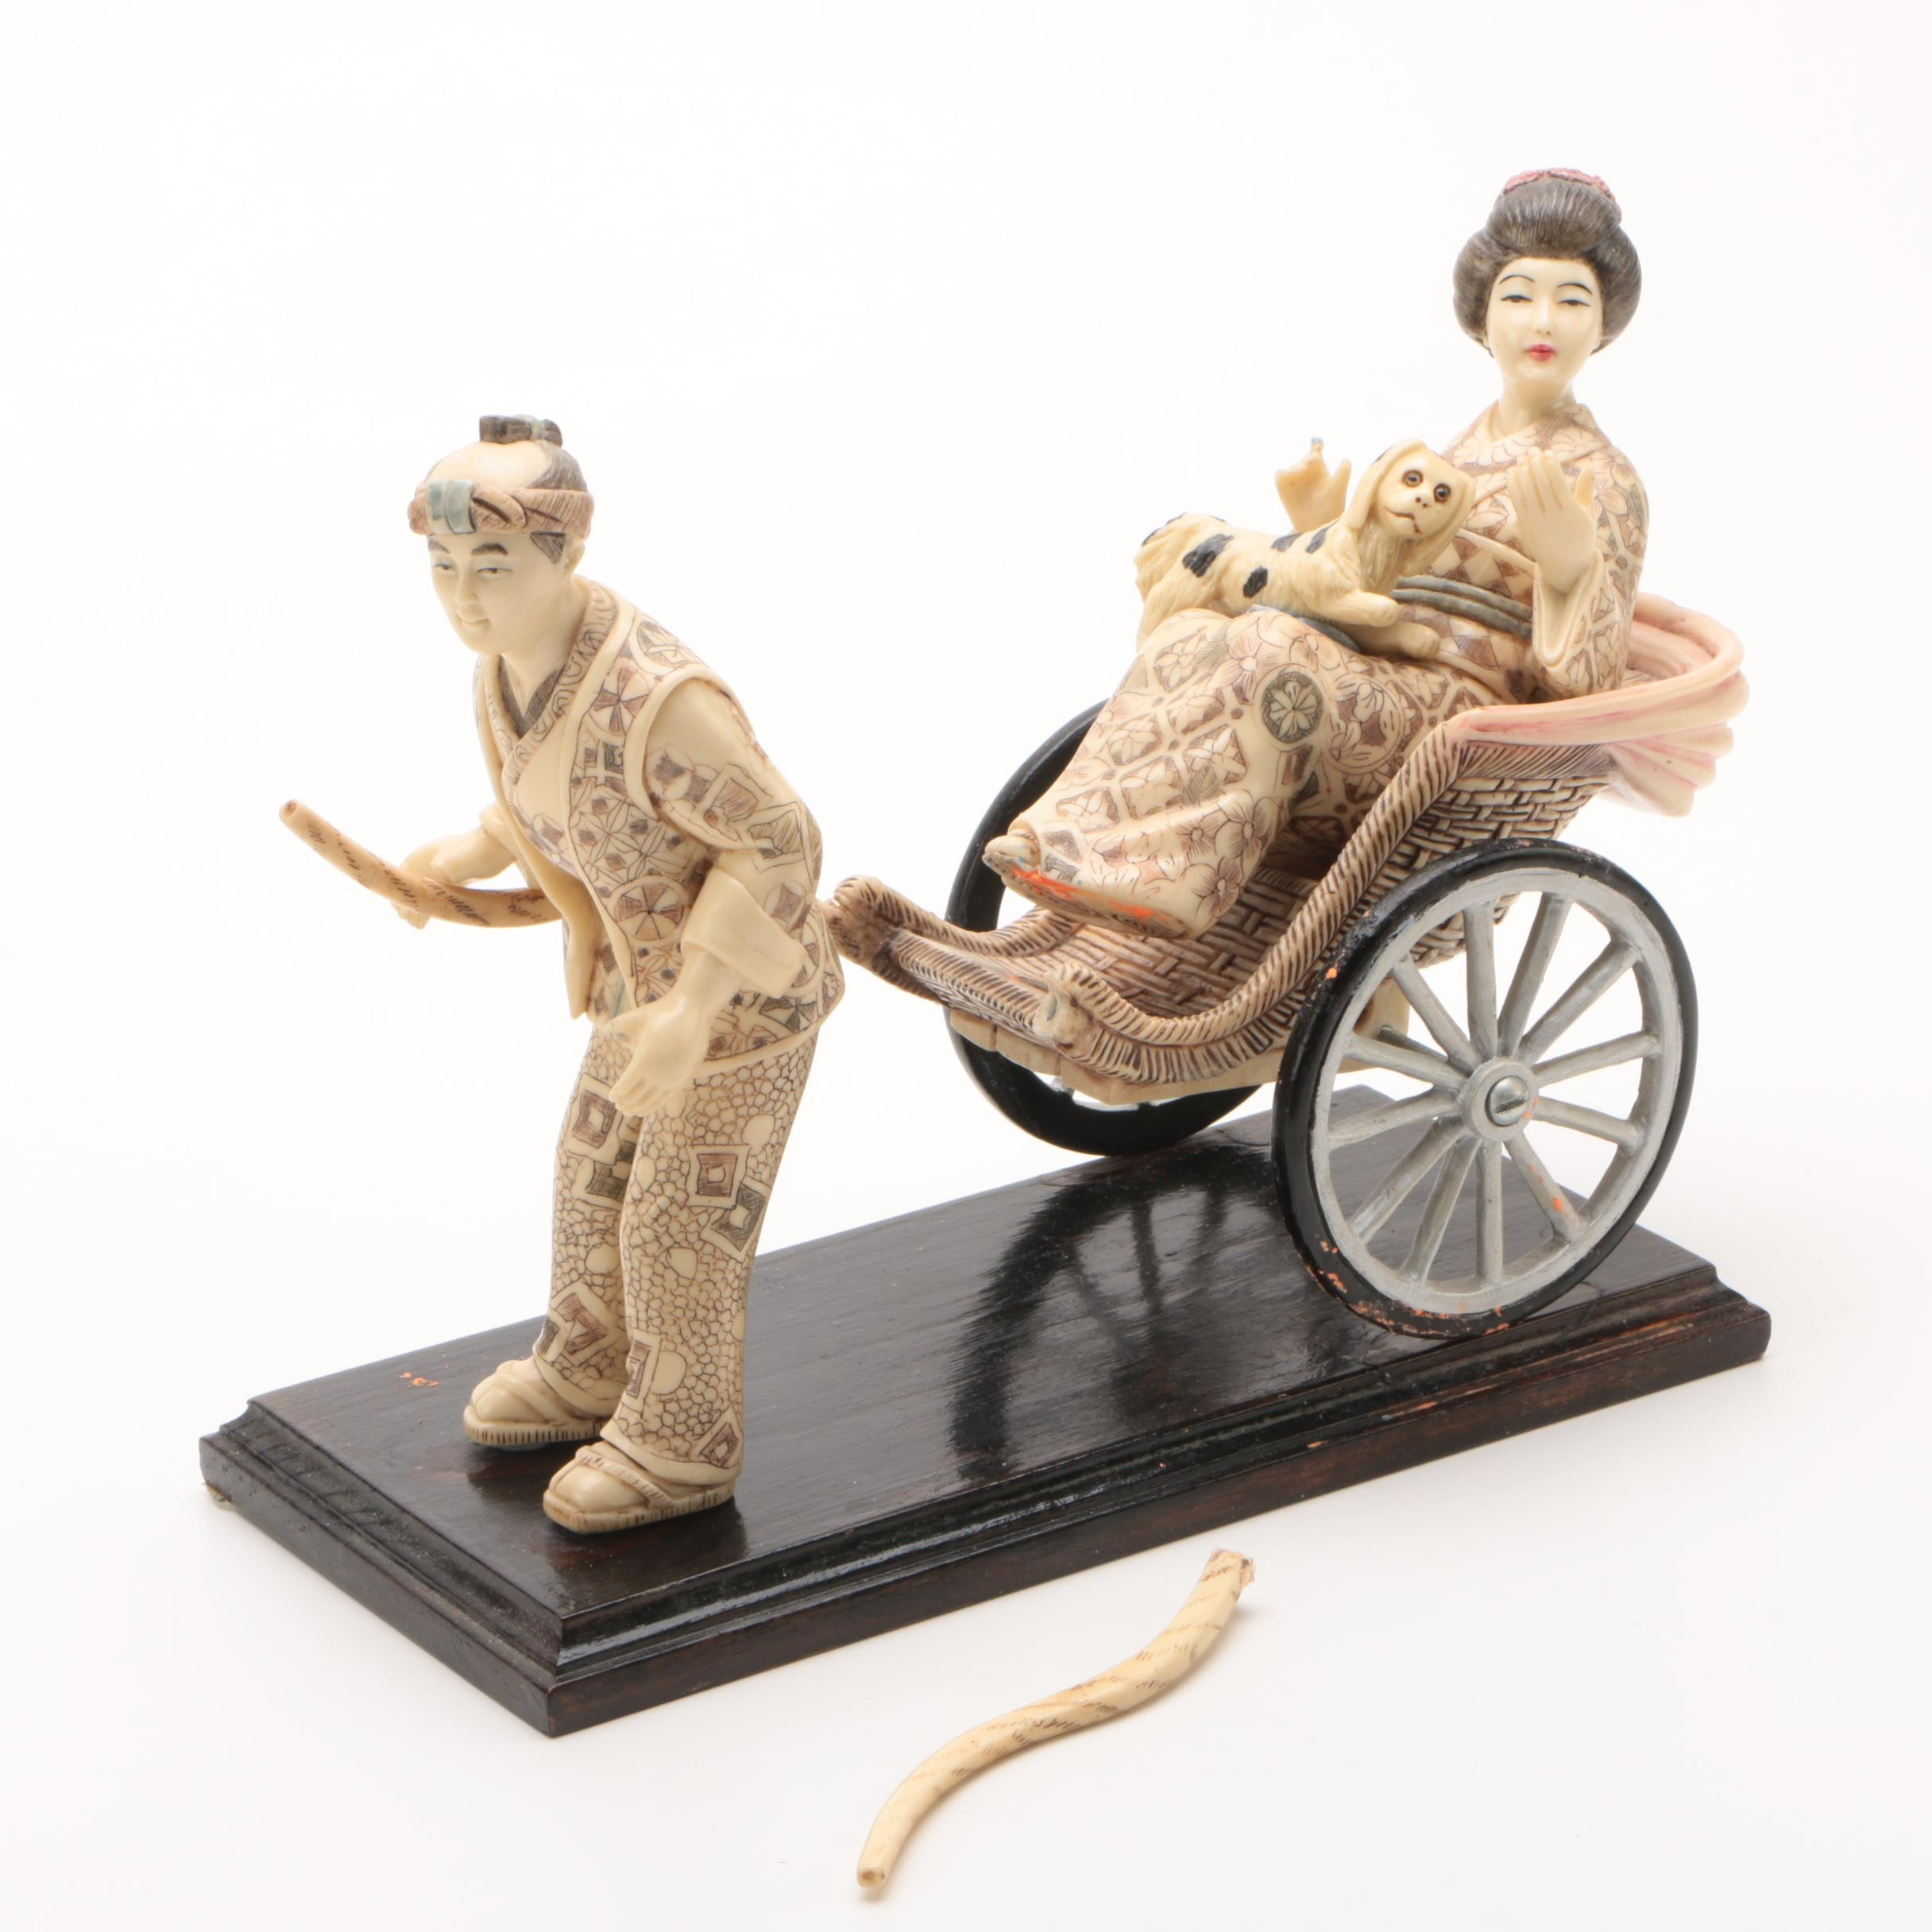 Japanese Cast Resin Rickshaw Figurine with Wooden Base